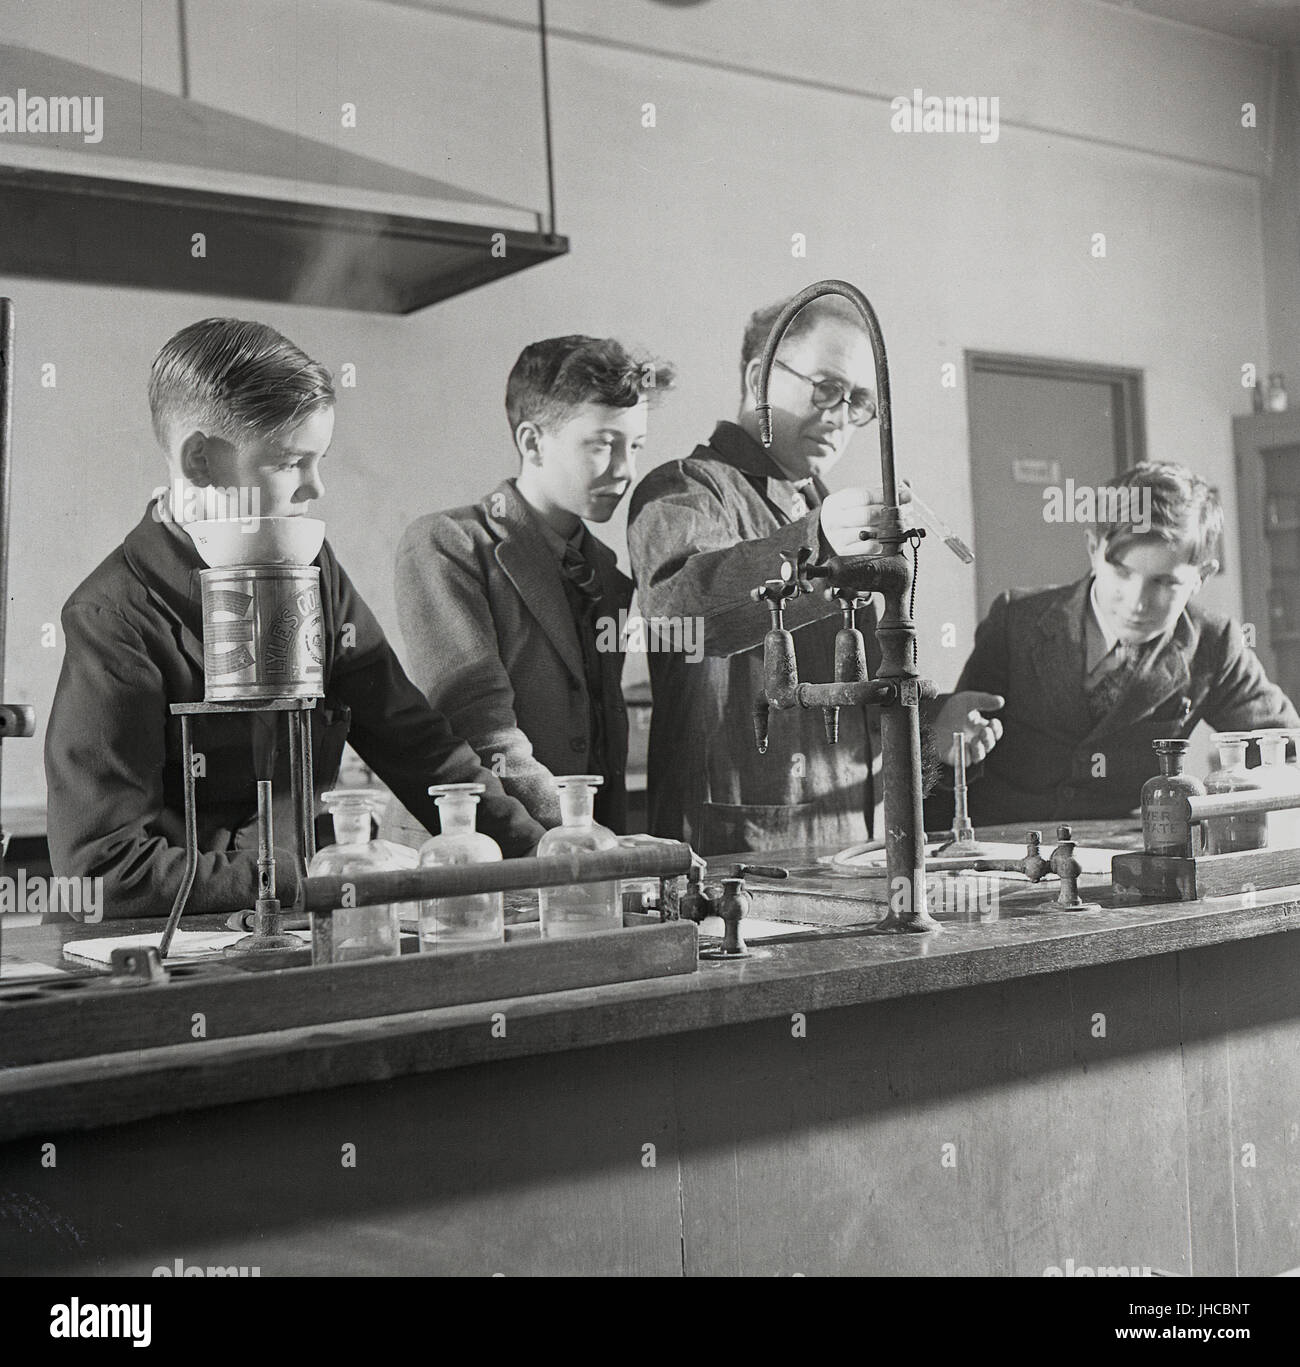 1950s, historical, England, UK, science lab of the South